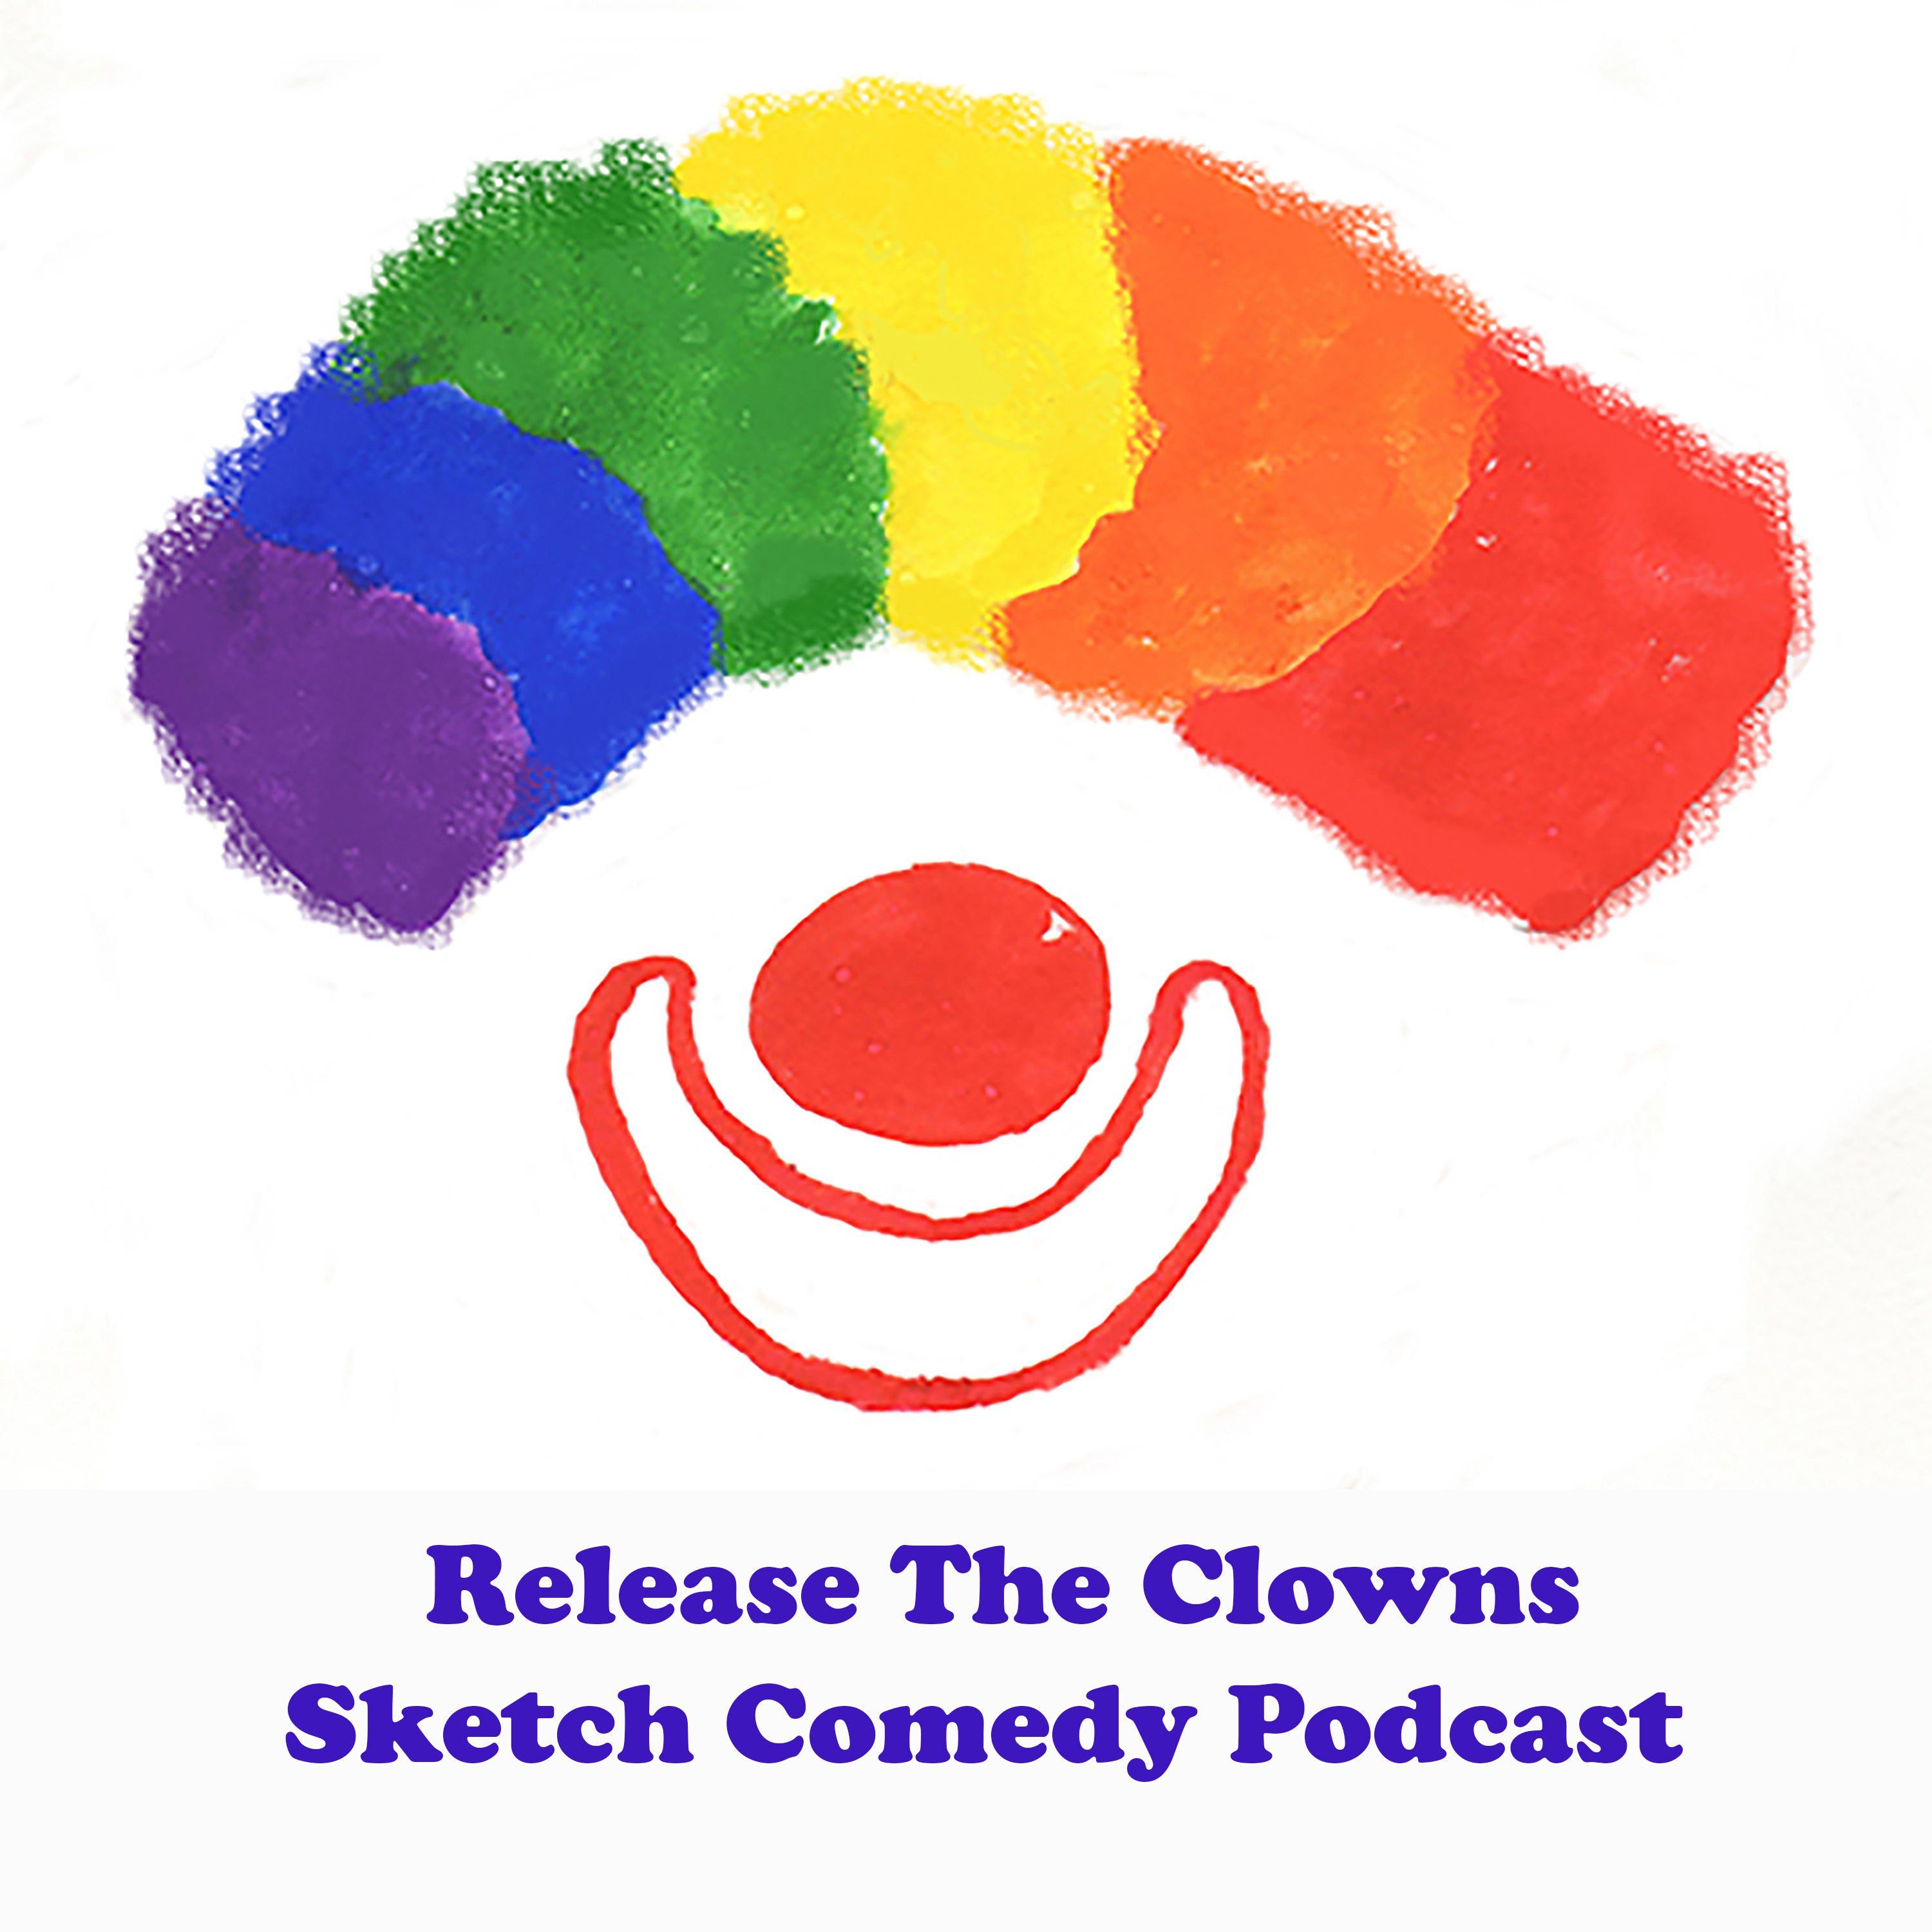 Release The Clowns